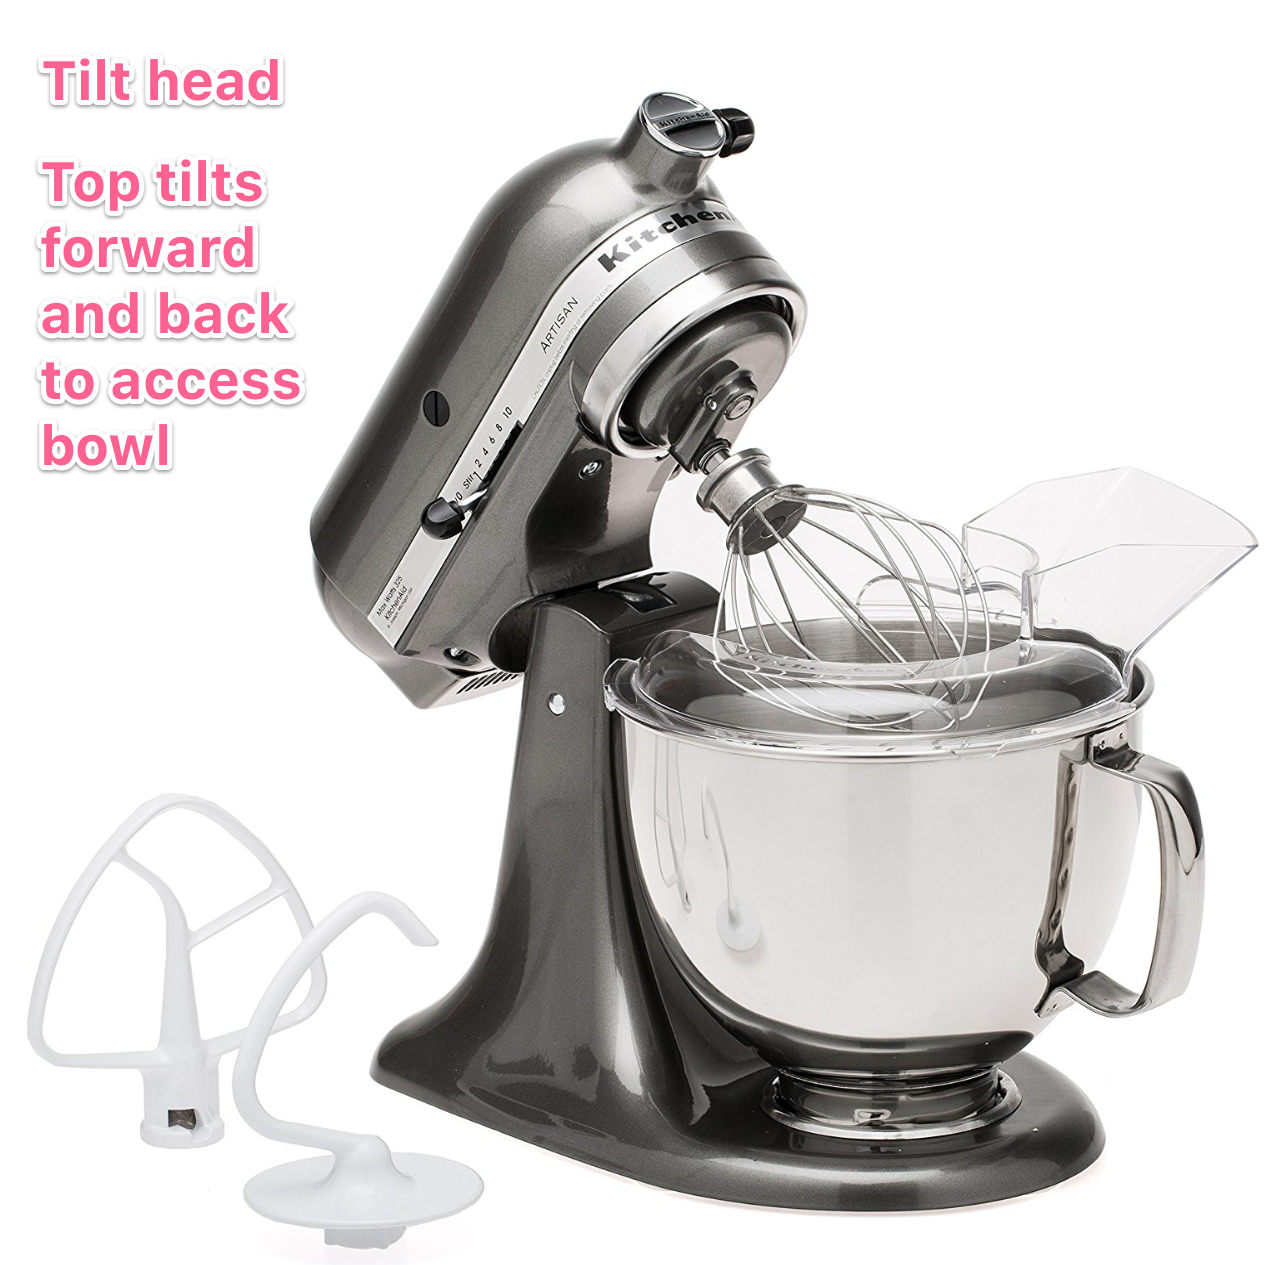 KitchenAid Mixer attachments: All 83 attachments, add-ons, and ... on kitchenaid blender parts, paint pole attachments, sunbeam stand mixer, kitchenaid ice cream maker, double oven stove, dyson attachments, dirt devil attachments, kitchenaid food processor, kitchenaid stand mixers,